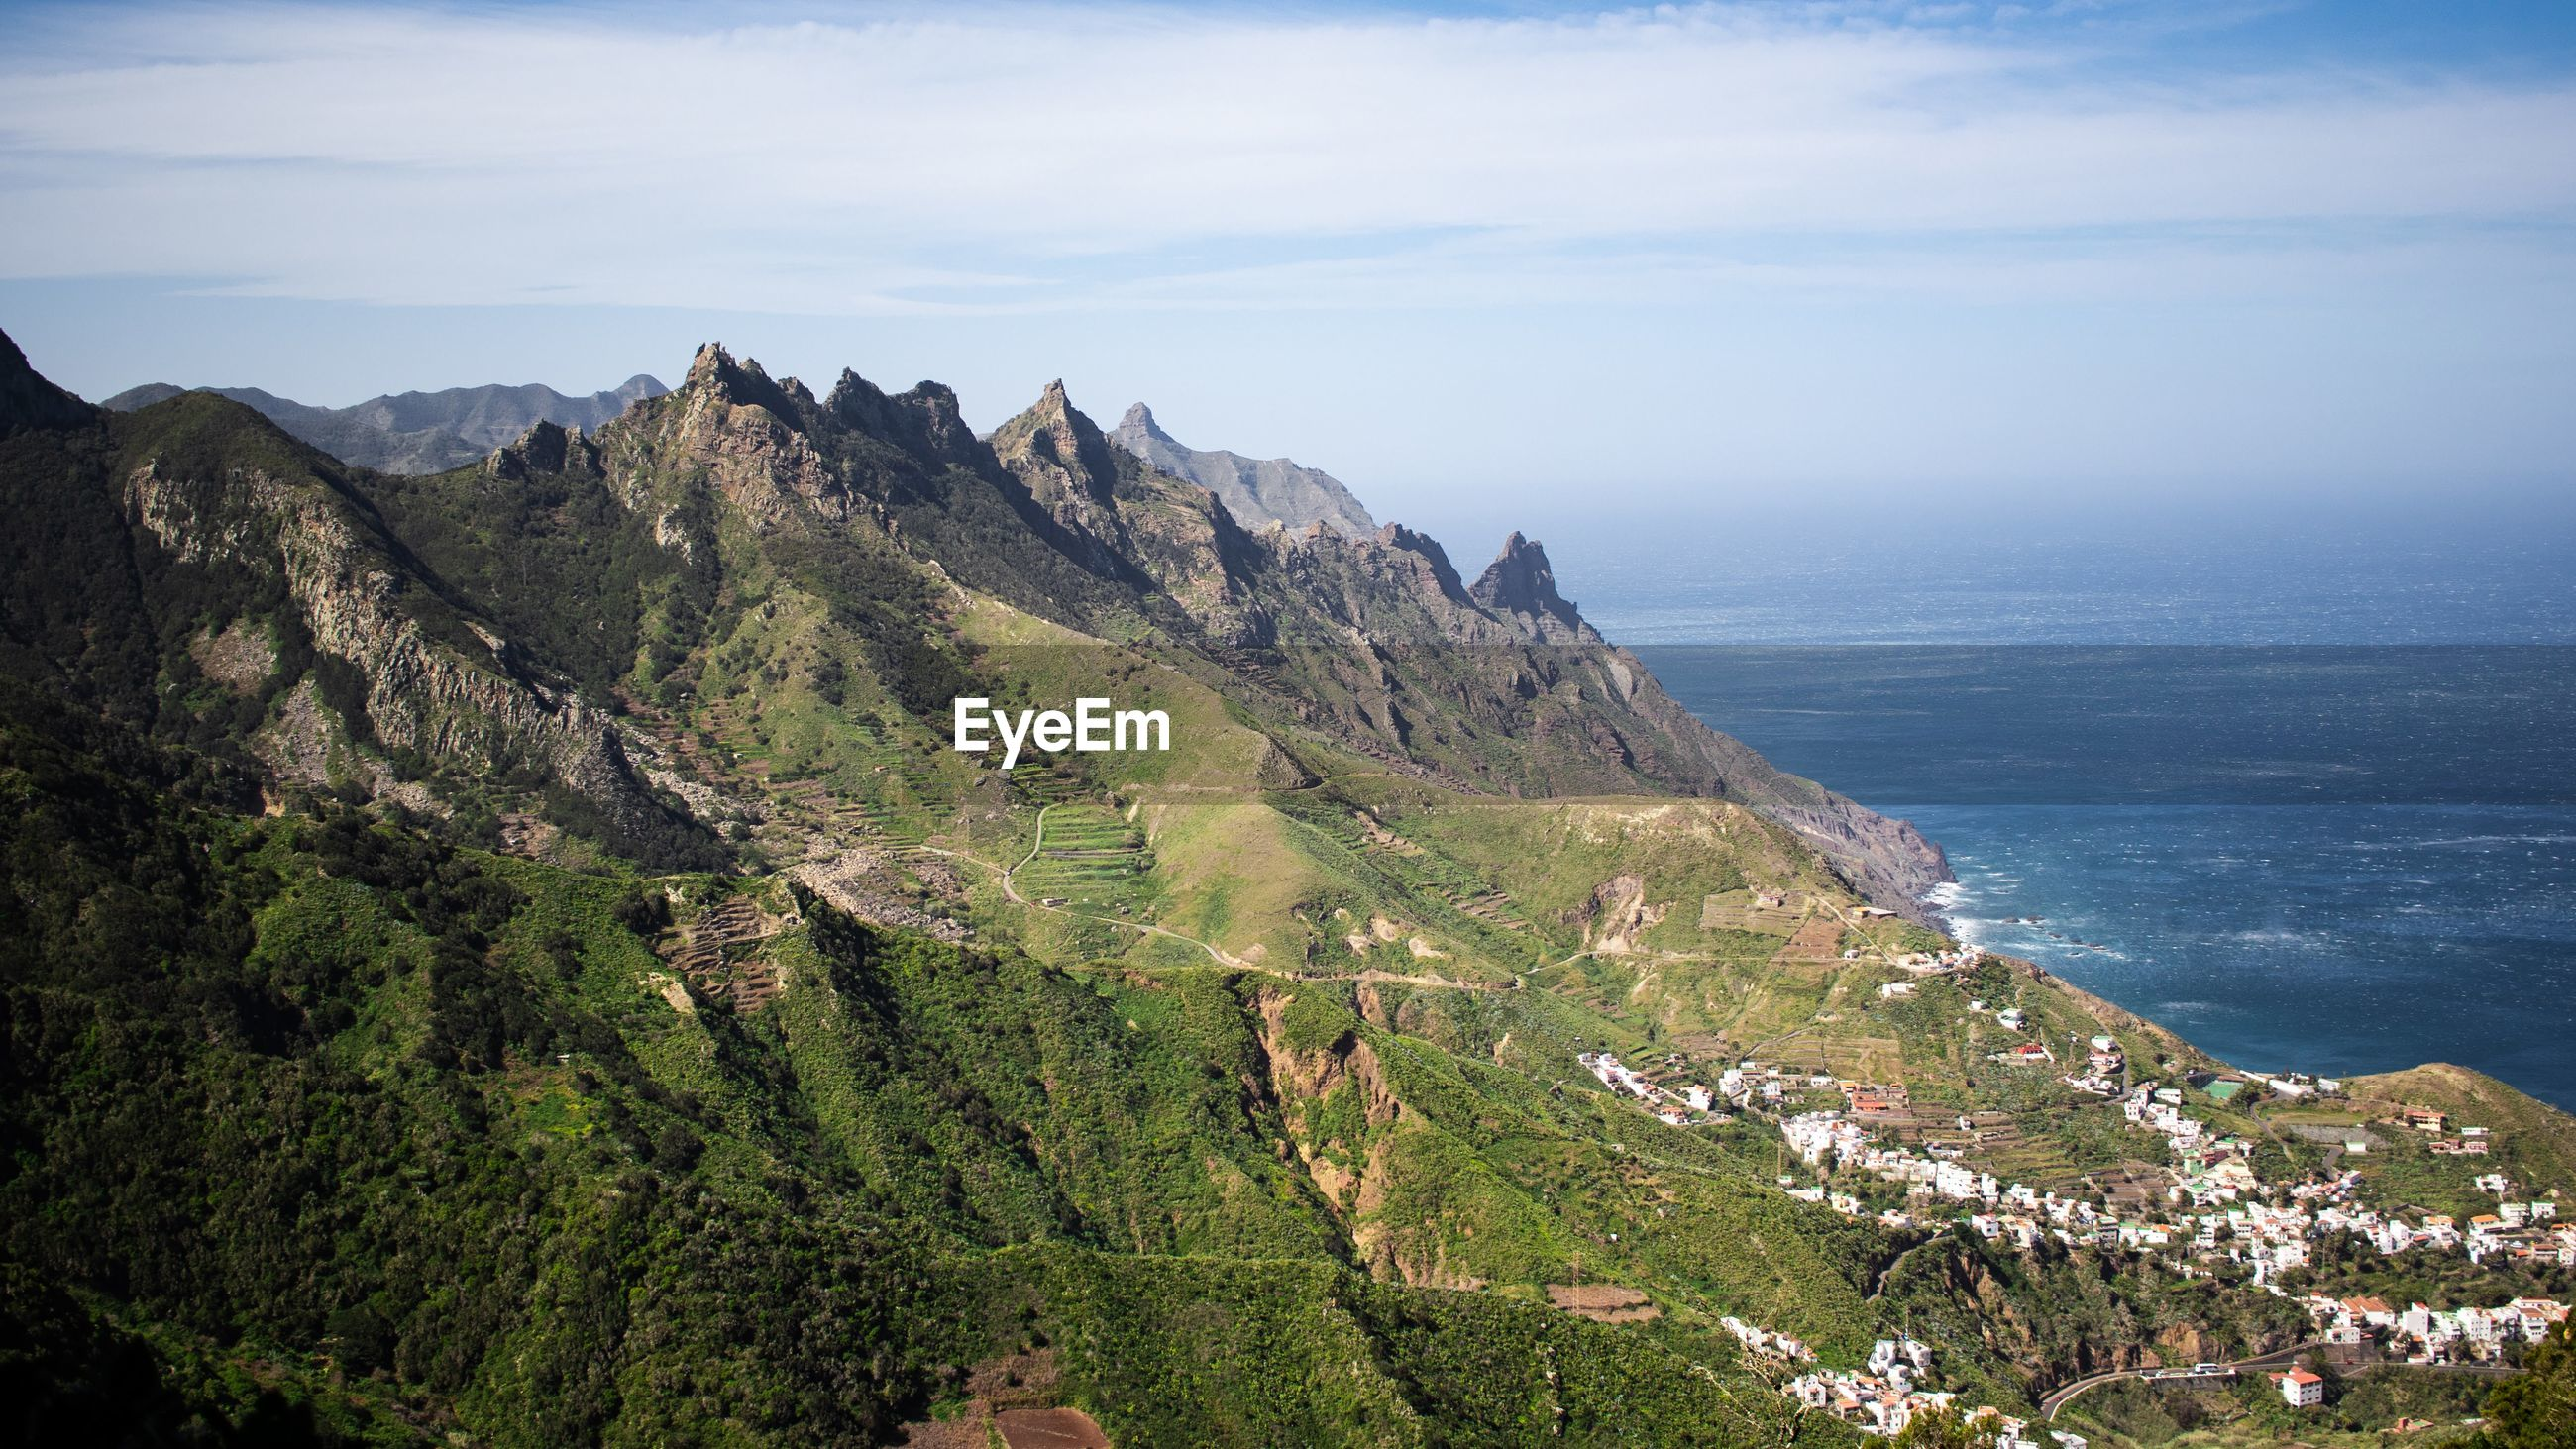 HIGH ANGLE VIEW OF MOUNTAINS AND SEA AGAINST SKY